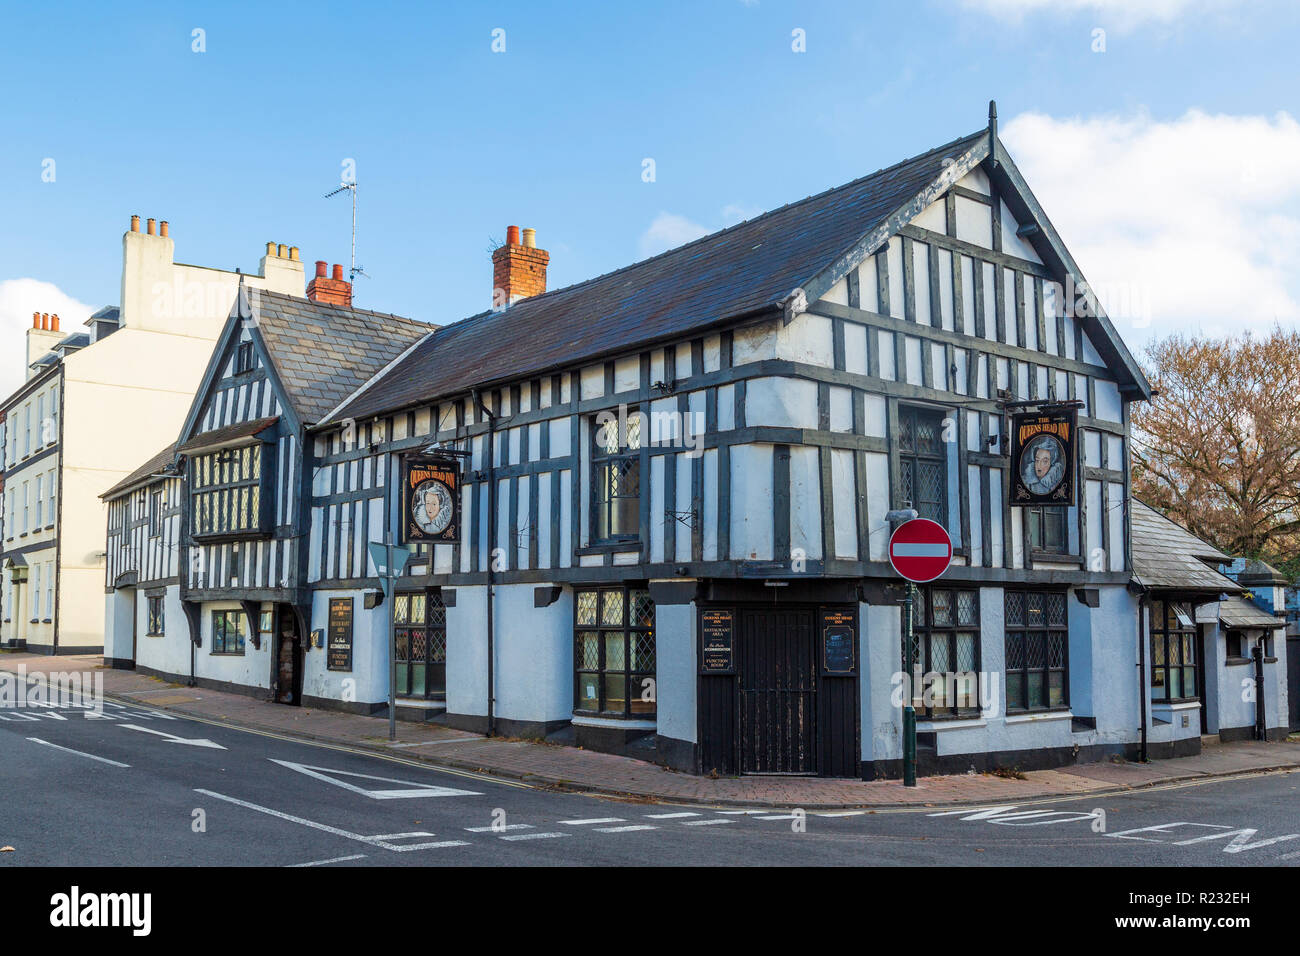 The Queen's Head Inn, St James Street, Monmouth, a sixteenth century coaching inn, said to be haunted. - Stock Image